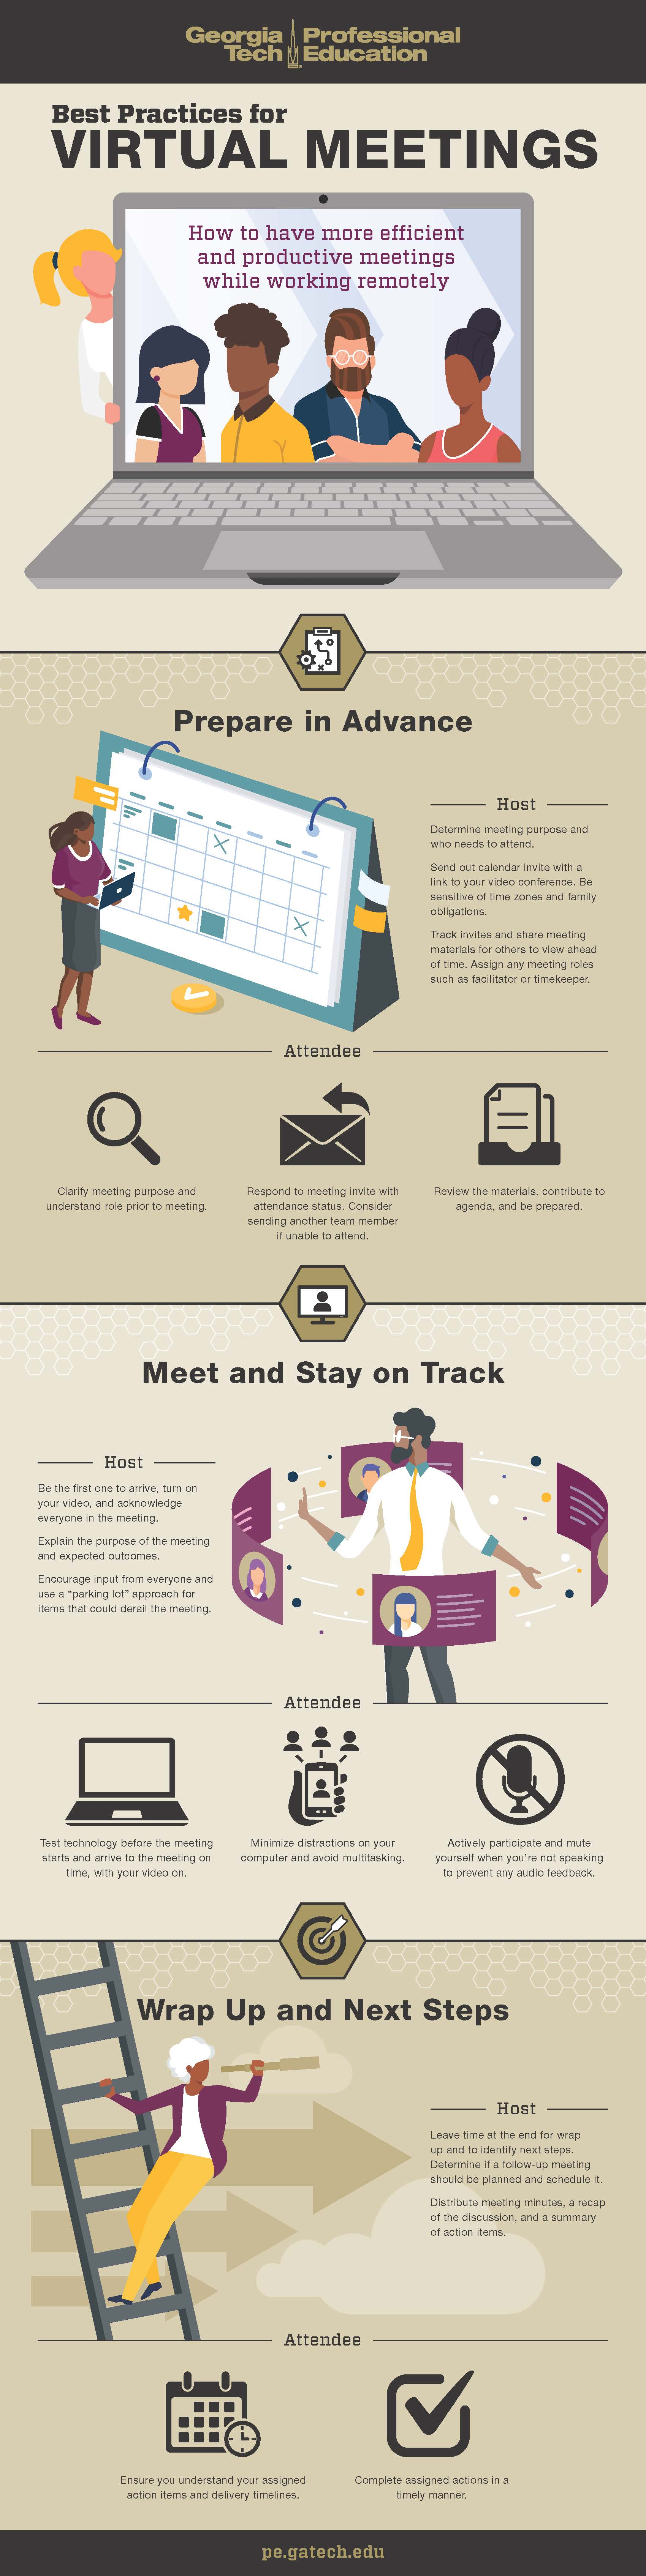 Infographic for best practices for virtual meetings